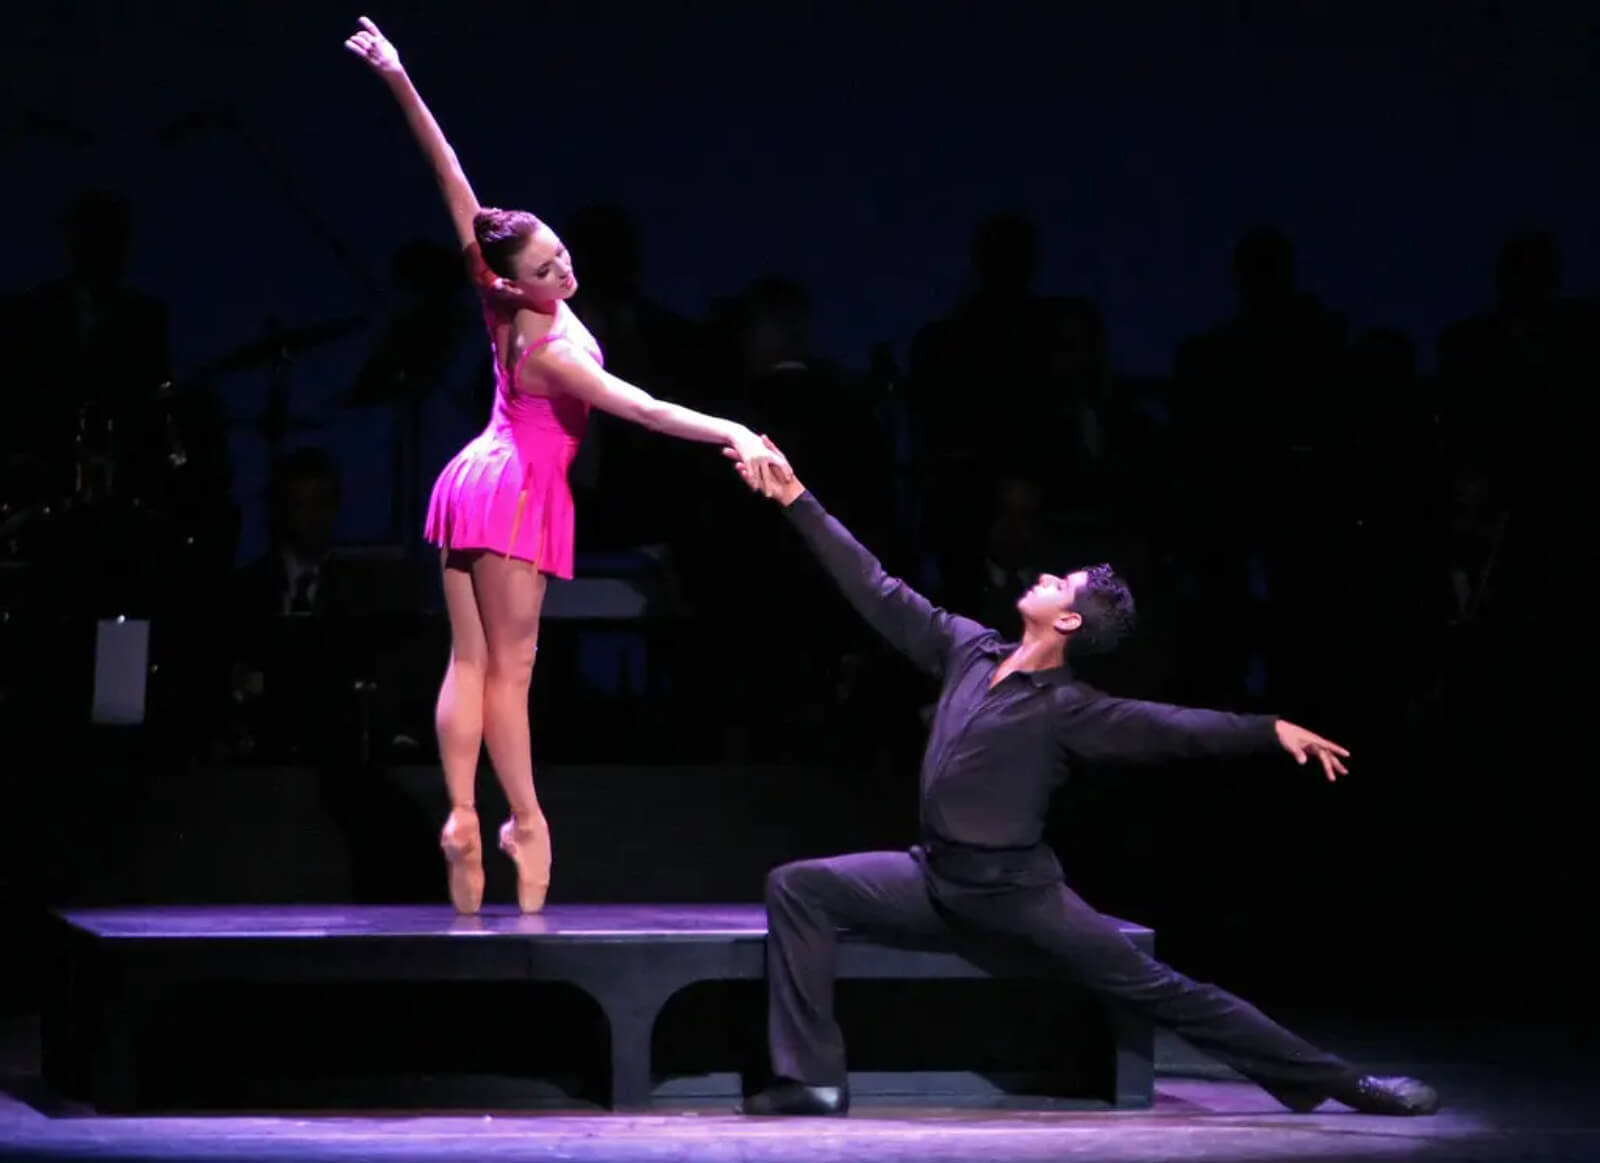 The pas de deux with Tiler Peck and Amar Ramasar continues on the bench: woman is standing on the bench en pointe while man is reaching in a lunge.